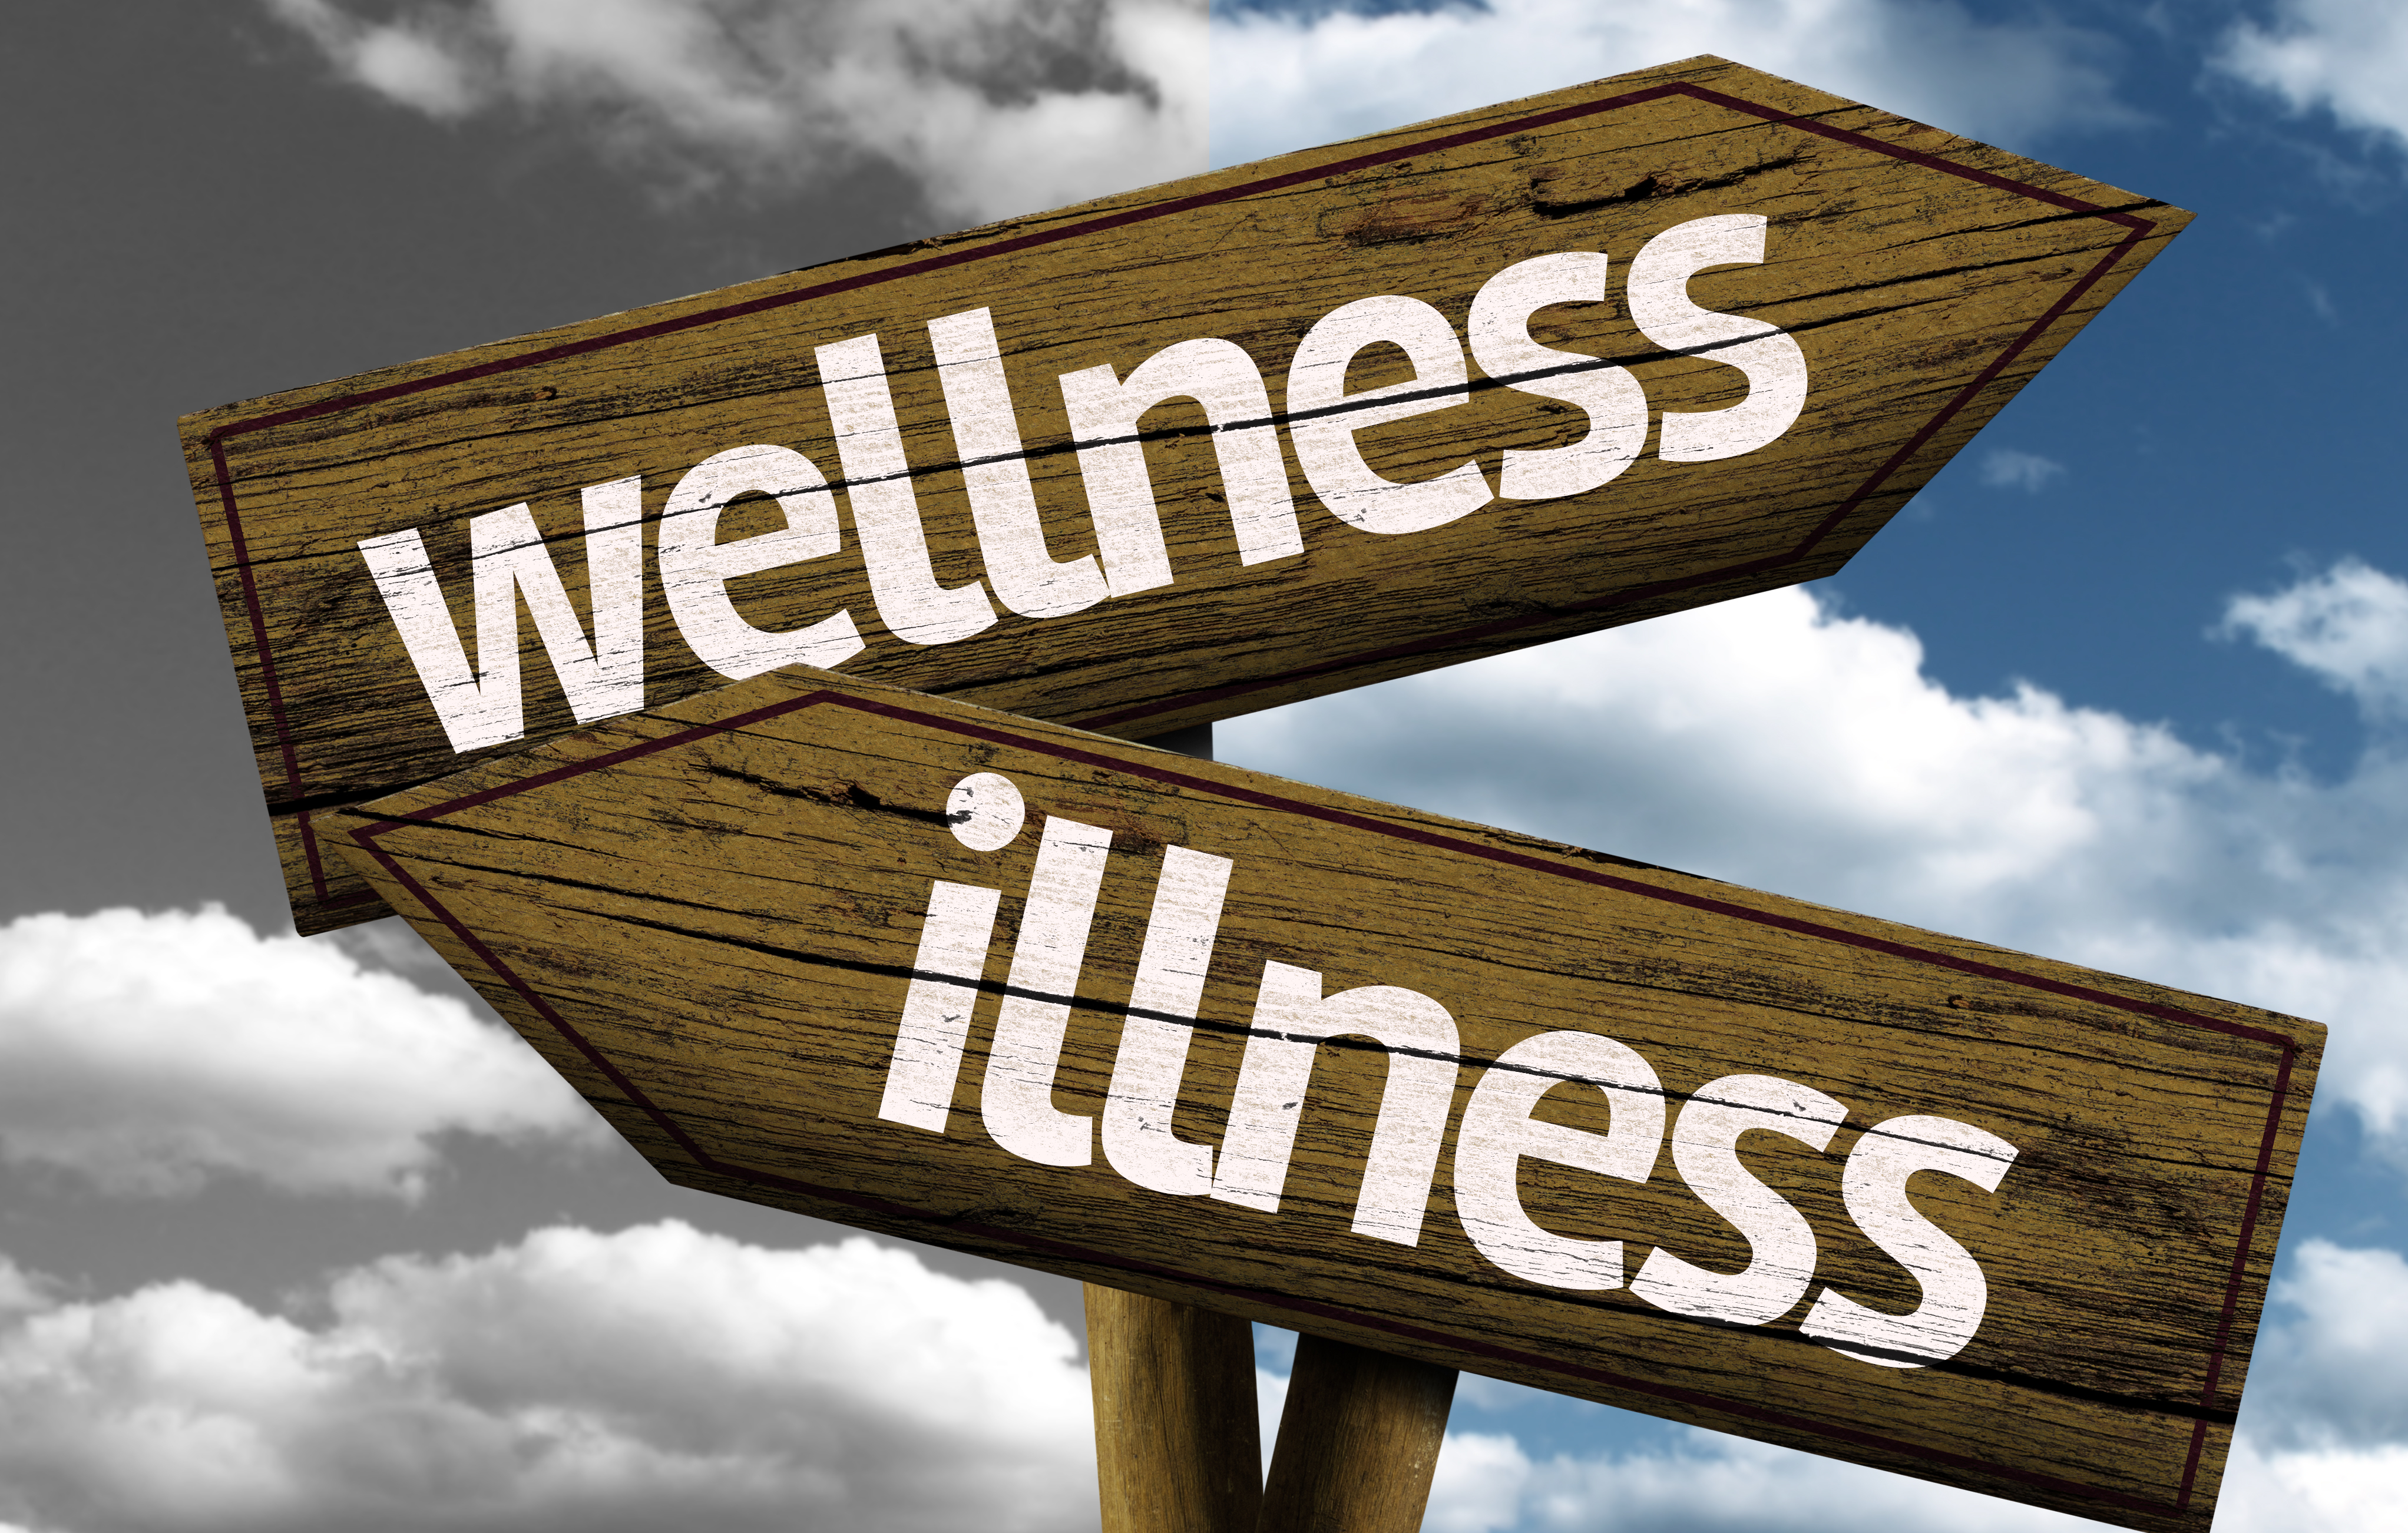 Preventive – wellness vs illness